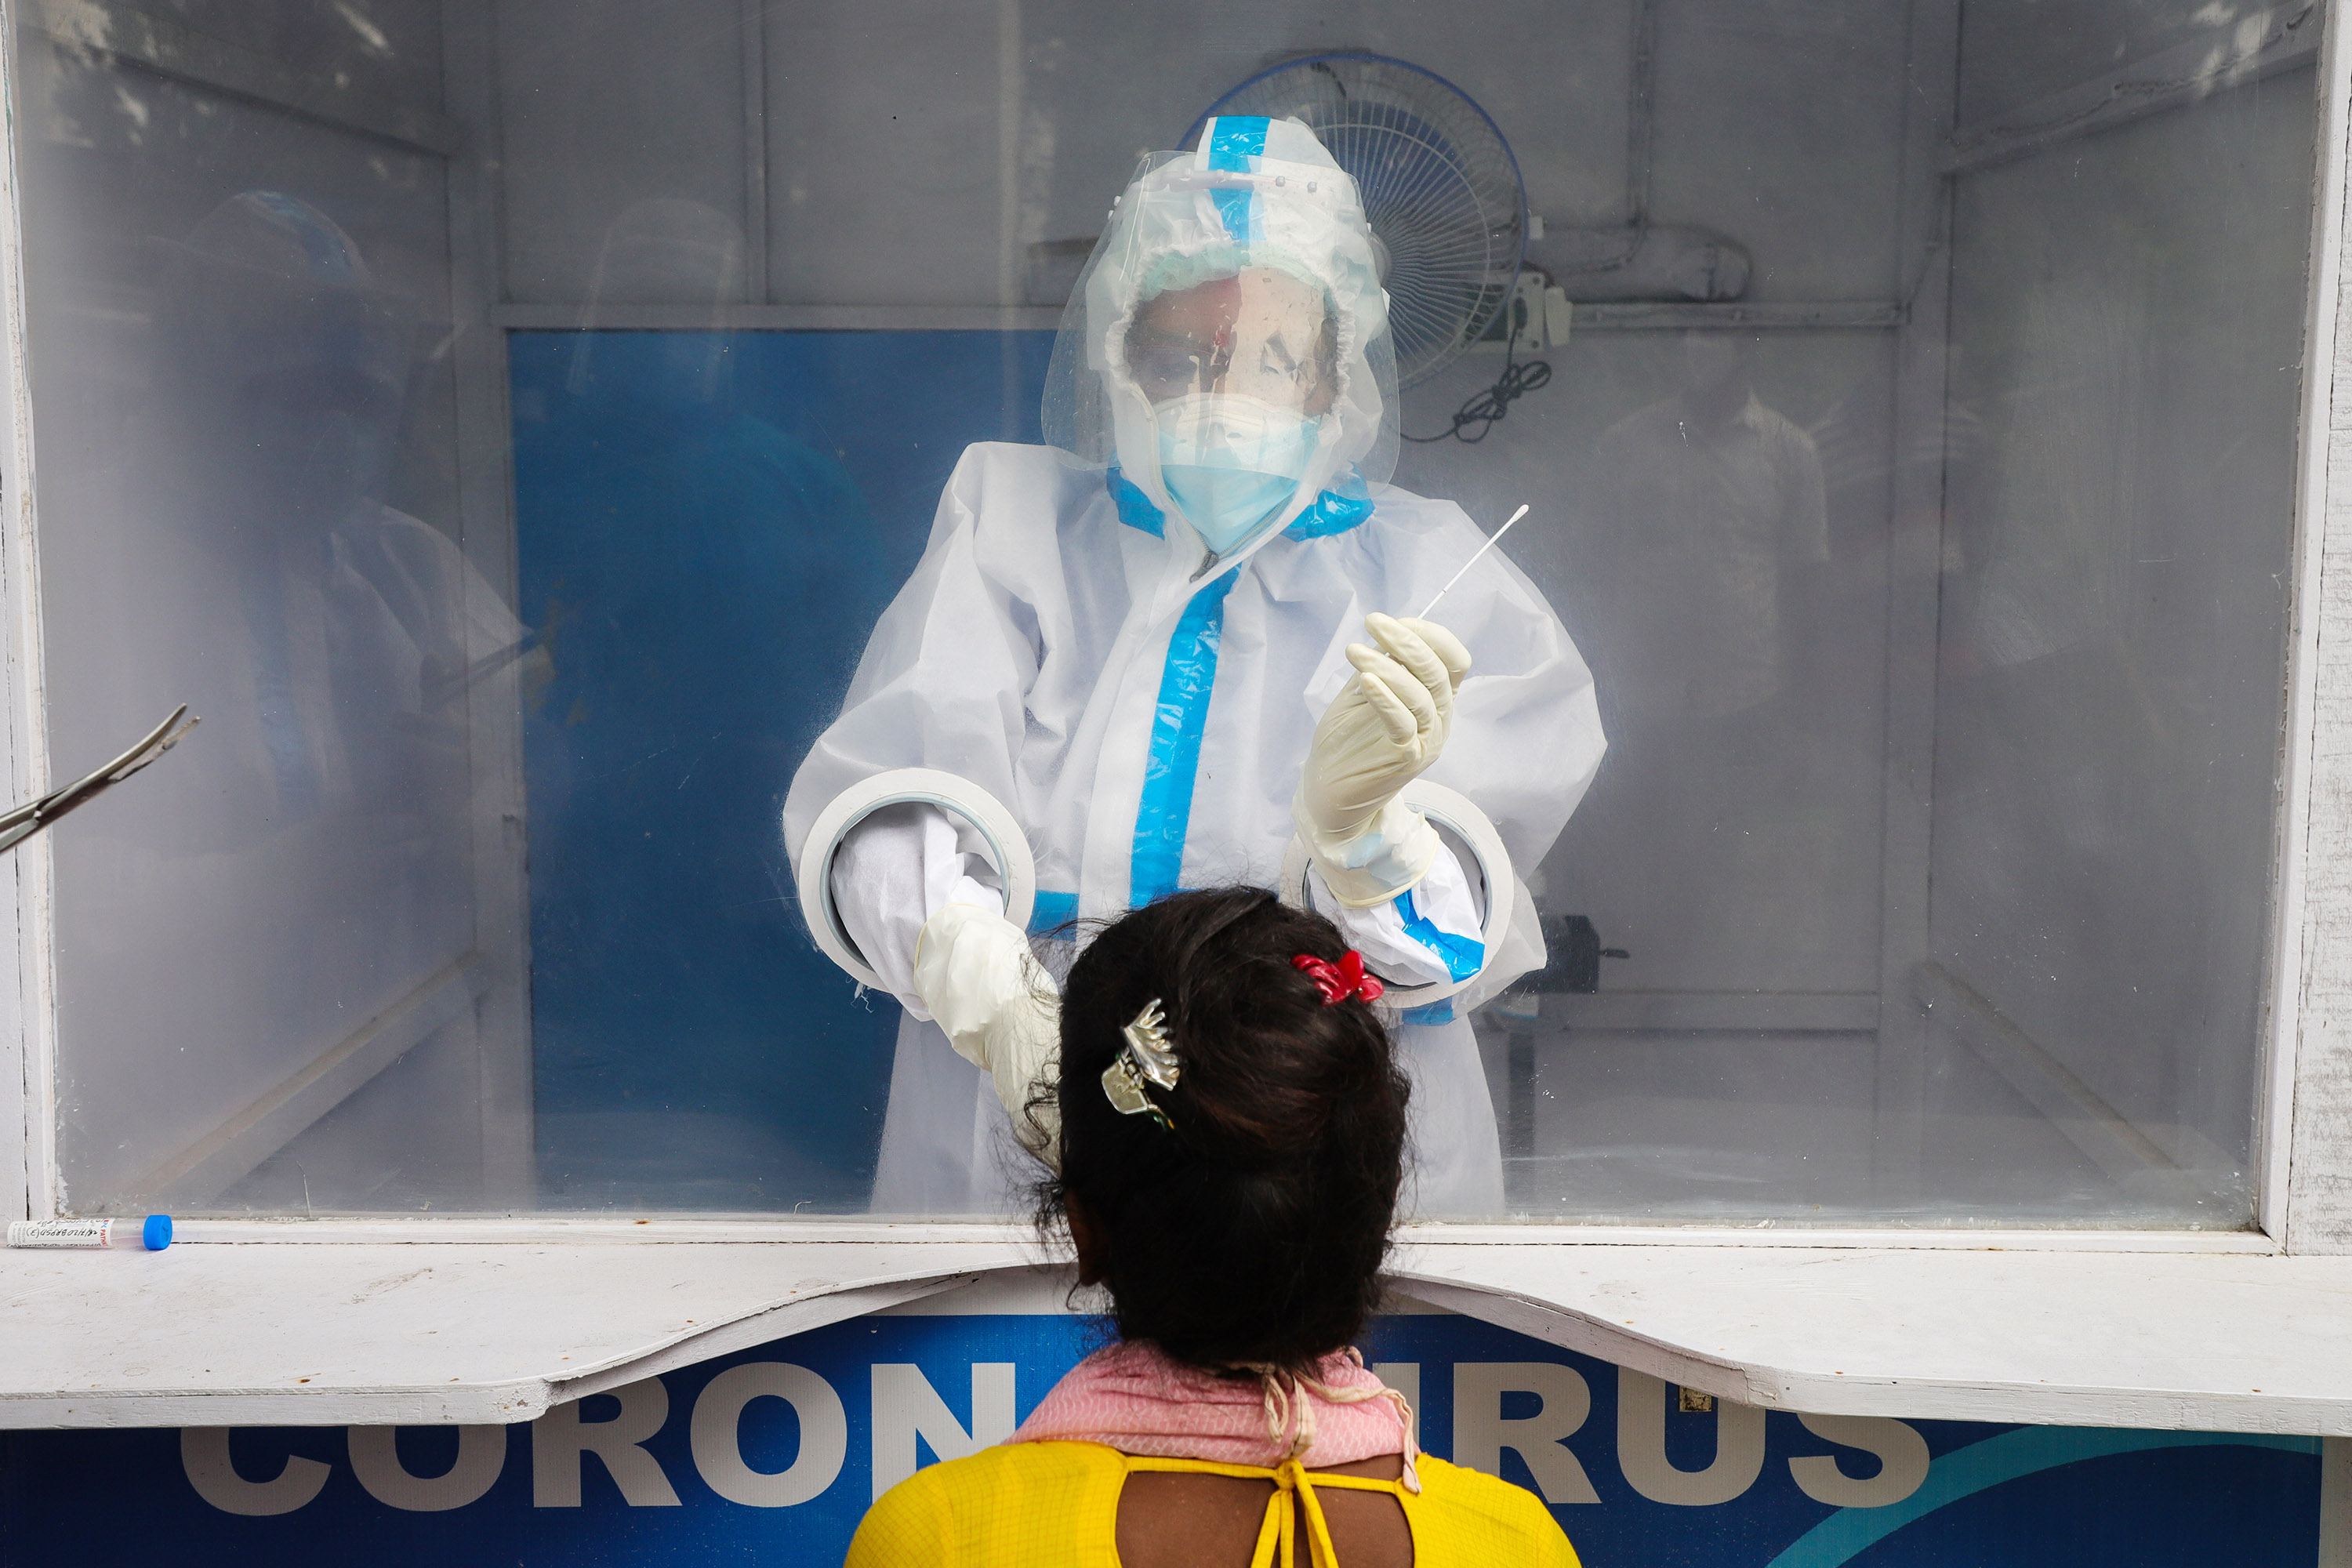 Health workers wearing PPE collect swab samples of people from inside a new Covid-19 testing kiosk in a hospital.